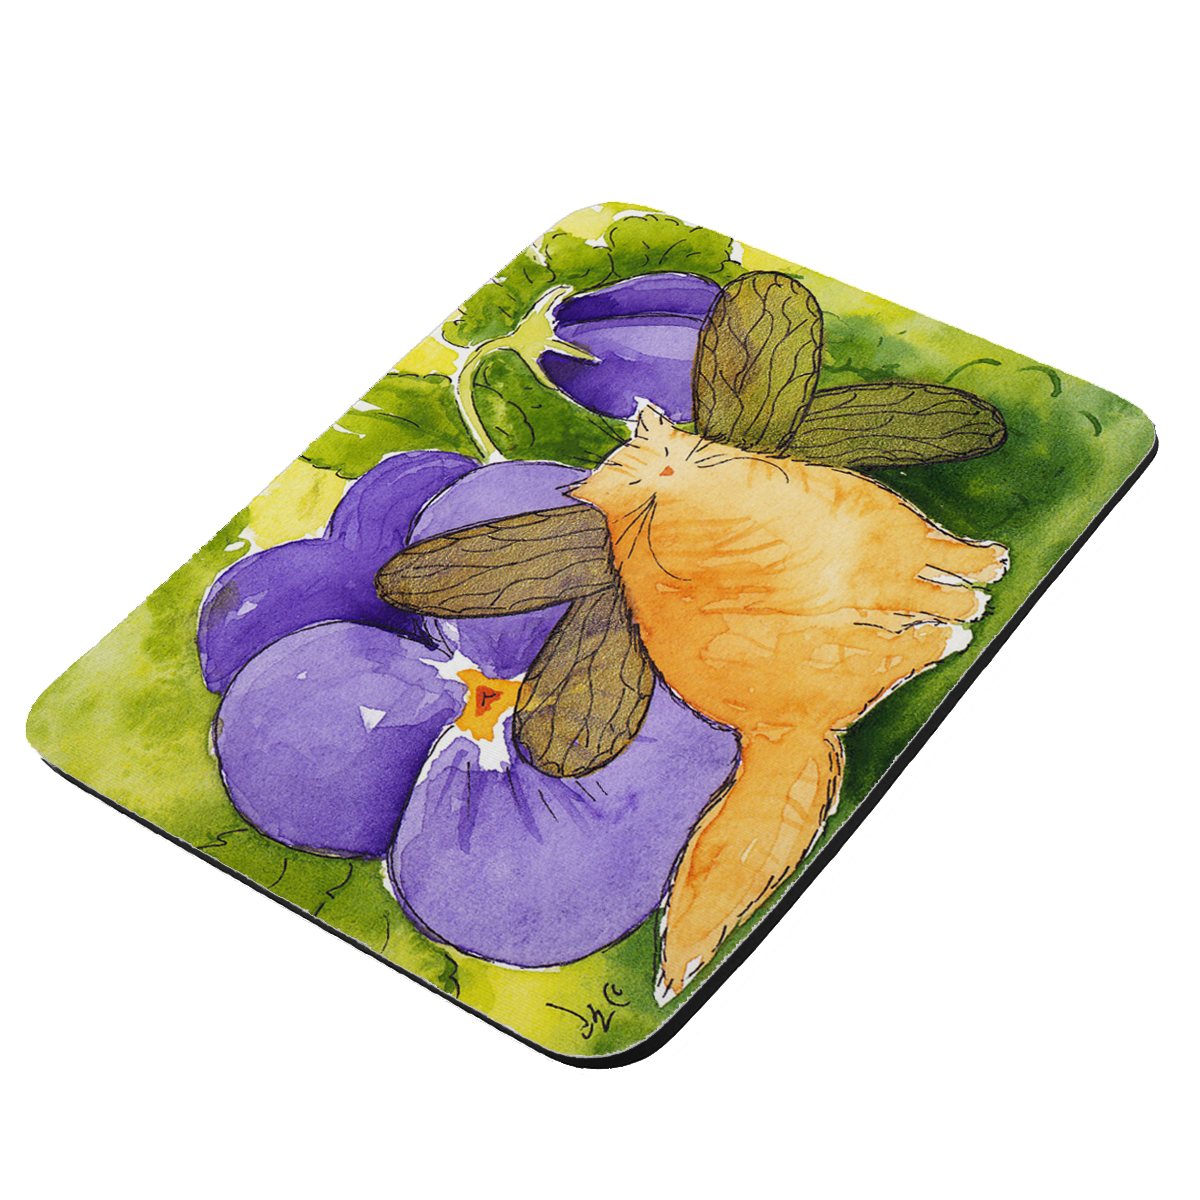 Ginger Tabby Maine Coon Kitty Fairy with Purple Pansies Cat Art by Denise Every - KuzmarK Mousepad / Hot Pad / Trivet